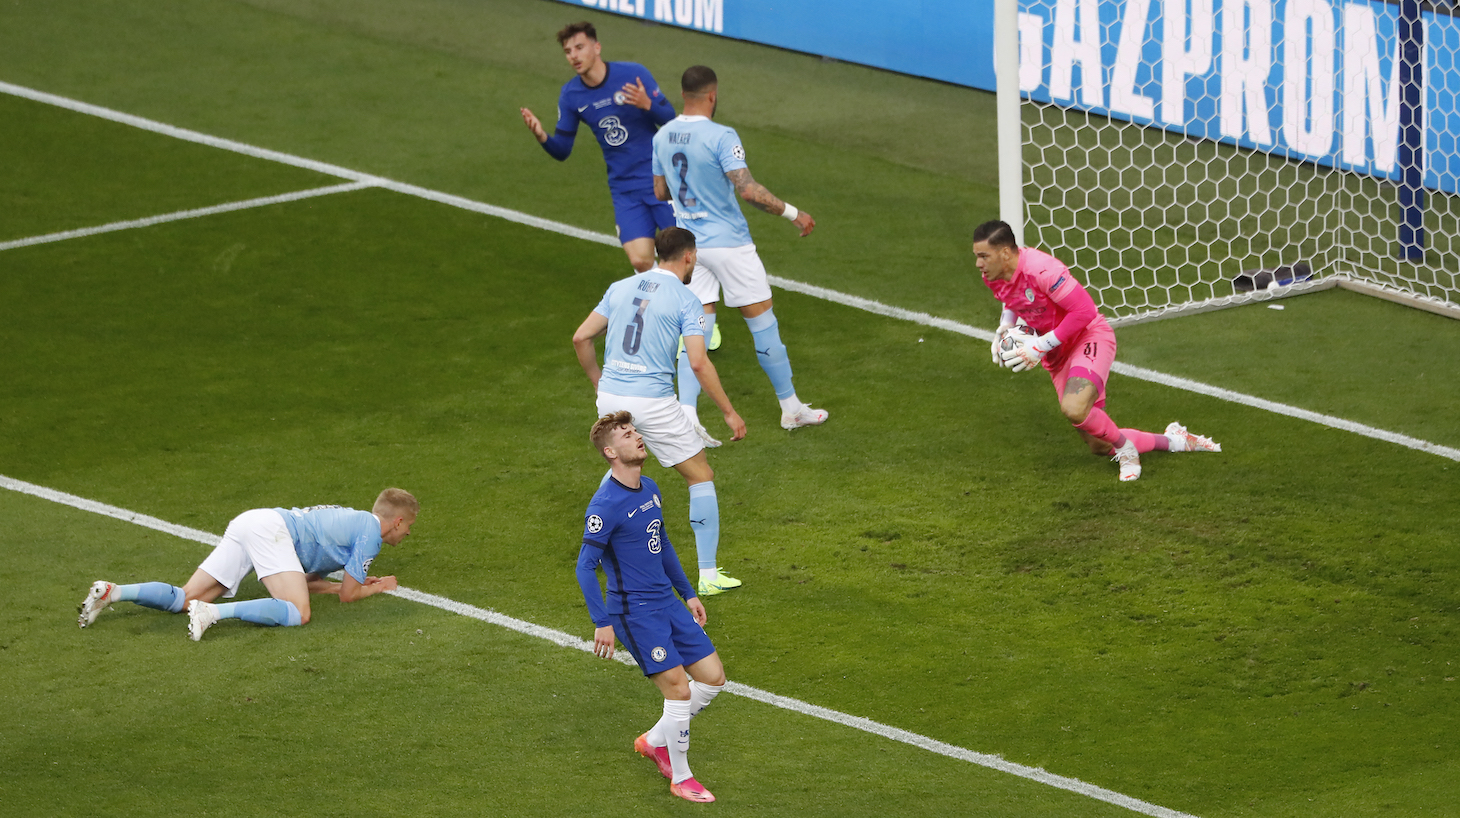 Timo Werner of Chelsea looks dejected as Ederson of Manchester City collects the ball during the UEFA Champions League Final between Manchester City and Chelsea FC at Estadio do Dragao on May 29, 2021 in Porto, Portugal.